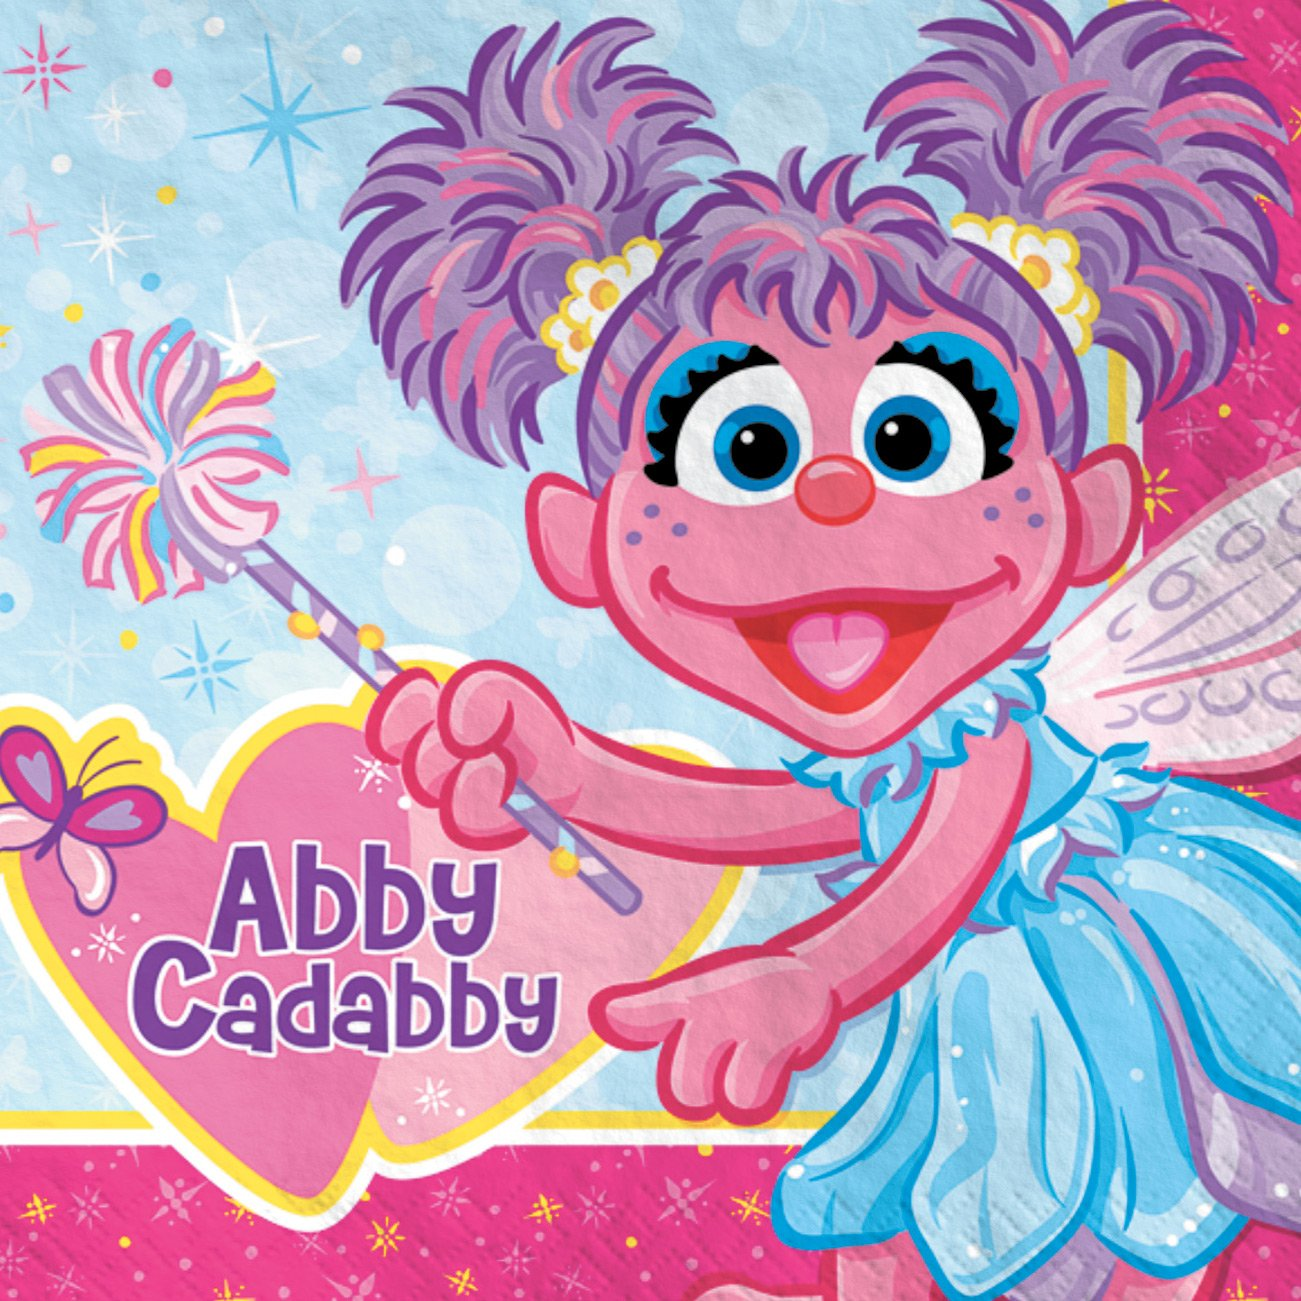 Abby Cadabby Party Decorations Abby Cadabby Party Supplies Singapore Party Supplies